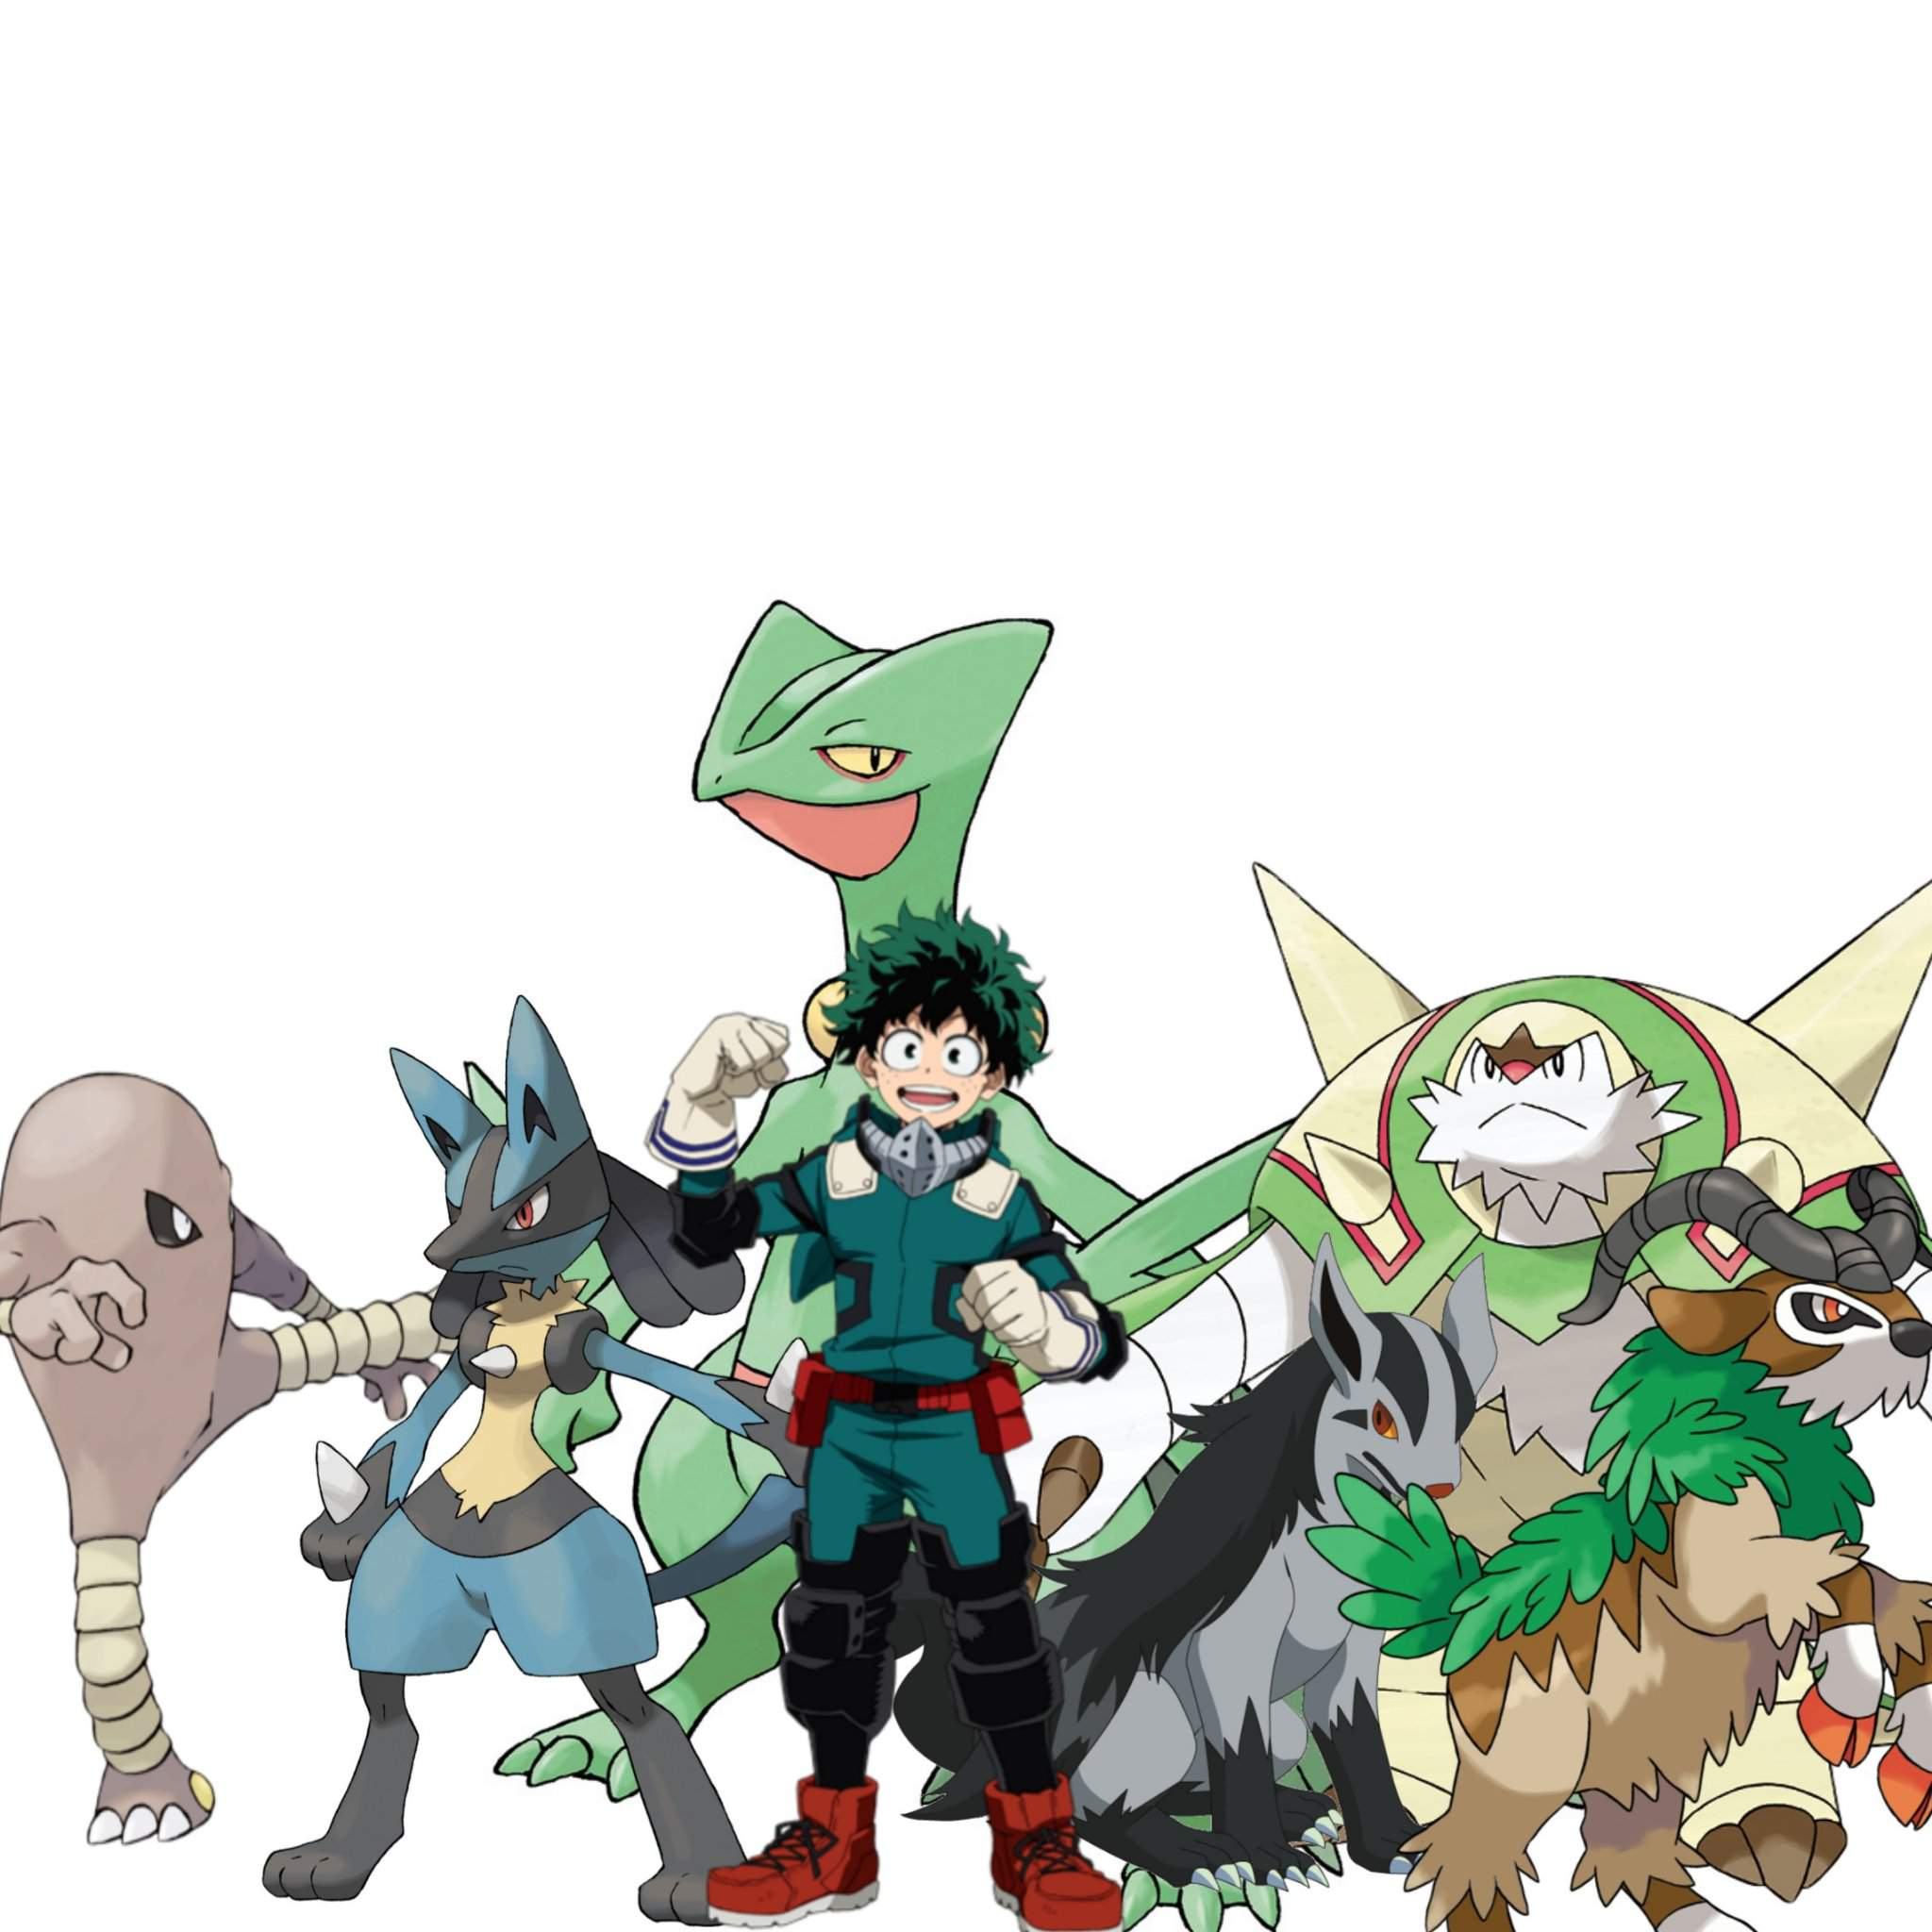 Pokemon Au Part 2 More Villains Toshinori Shie Hassaikai Big 3 Other Stuff Probably My Hero Academia Amino He was infamous in the modern. amino apps